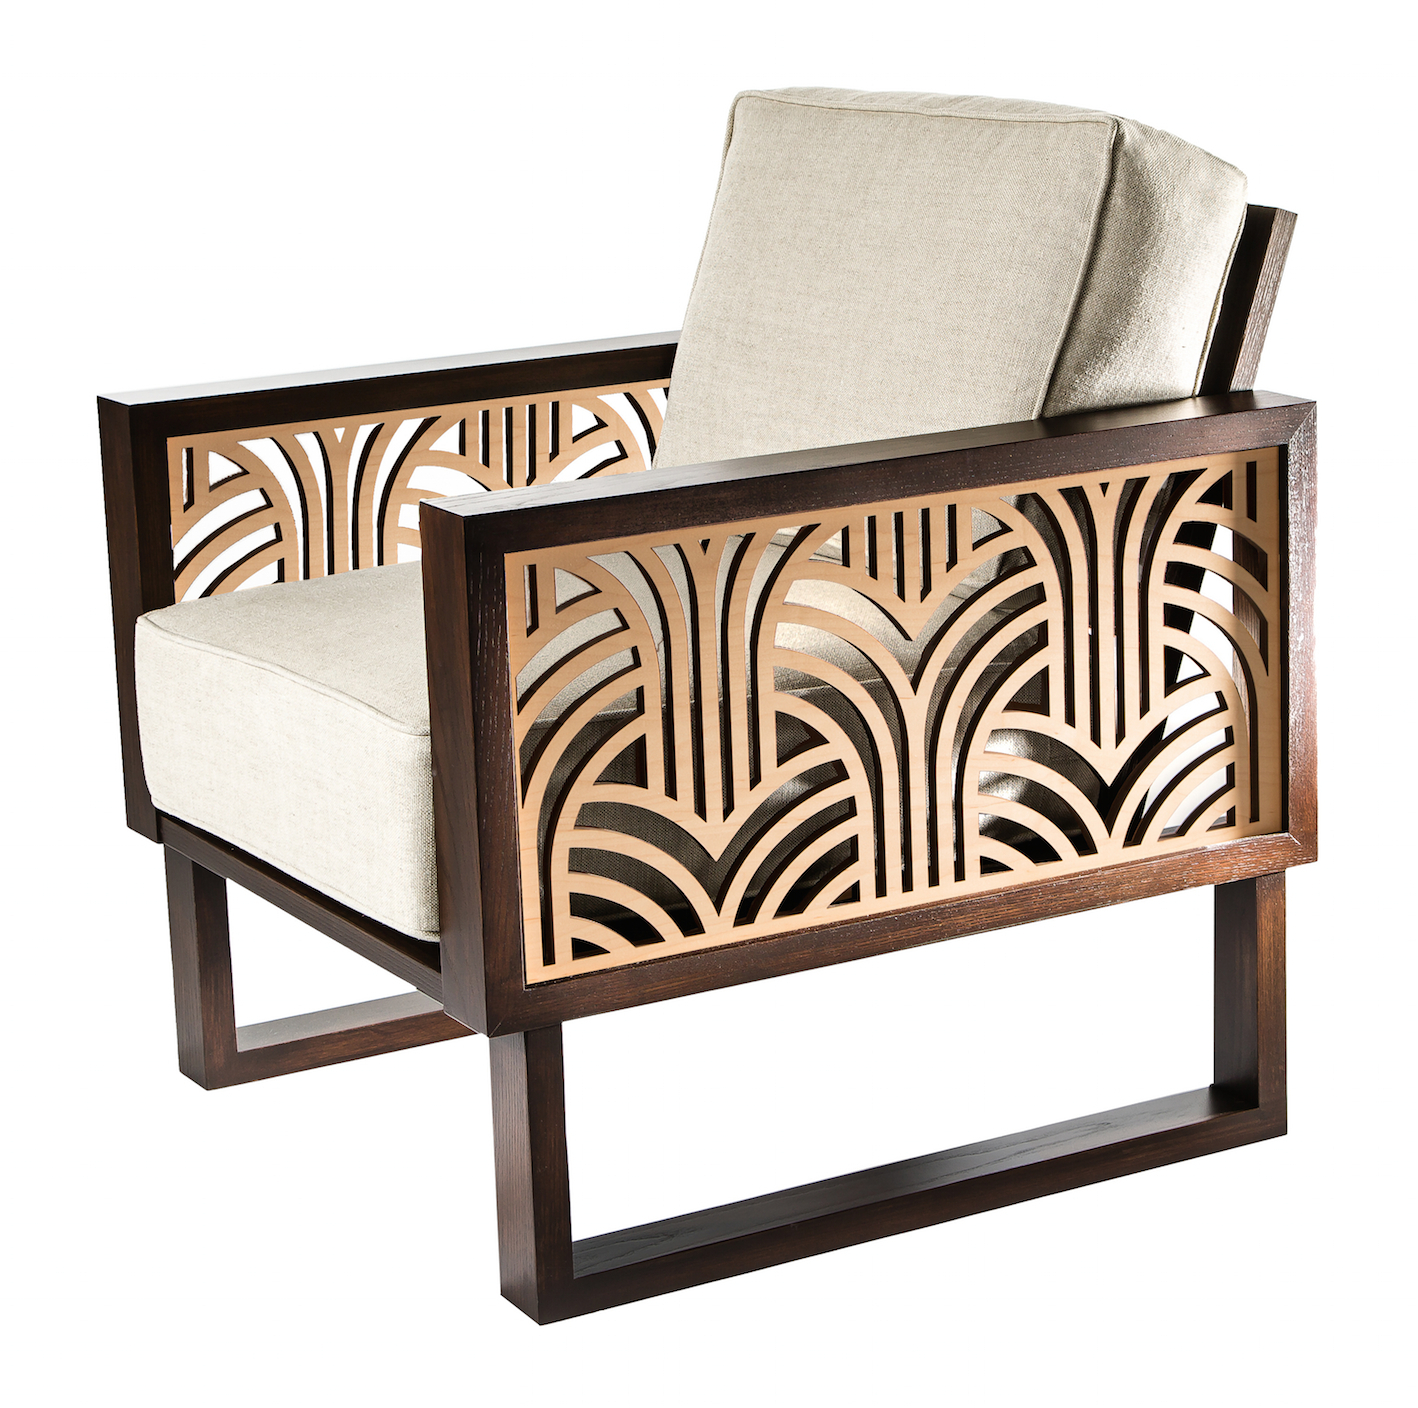 Art Deco Sofa And Chairs Regarding Best And Newest 13 Art Deco Chairs – Art Deco Furniture (View 3 of 20)